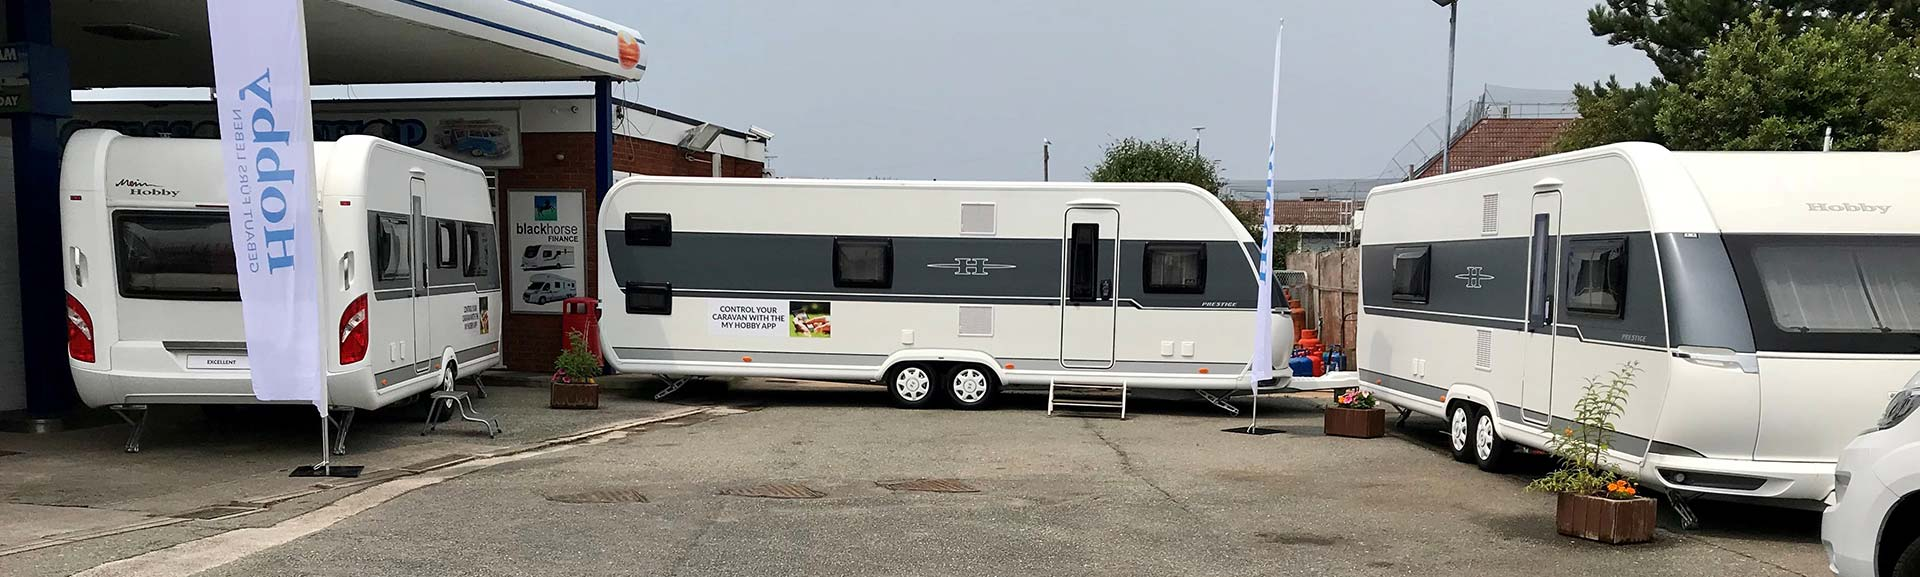 Welcome to J & J Caravans and Motorhomes